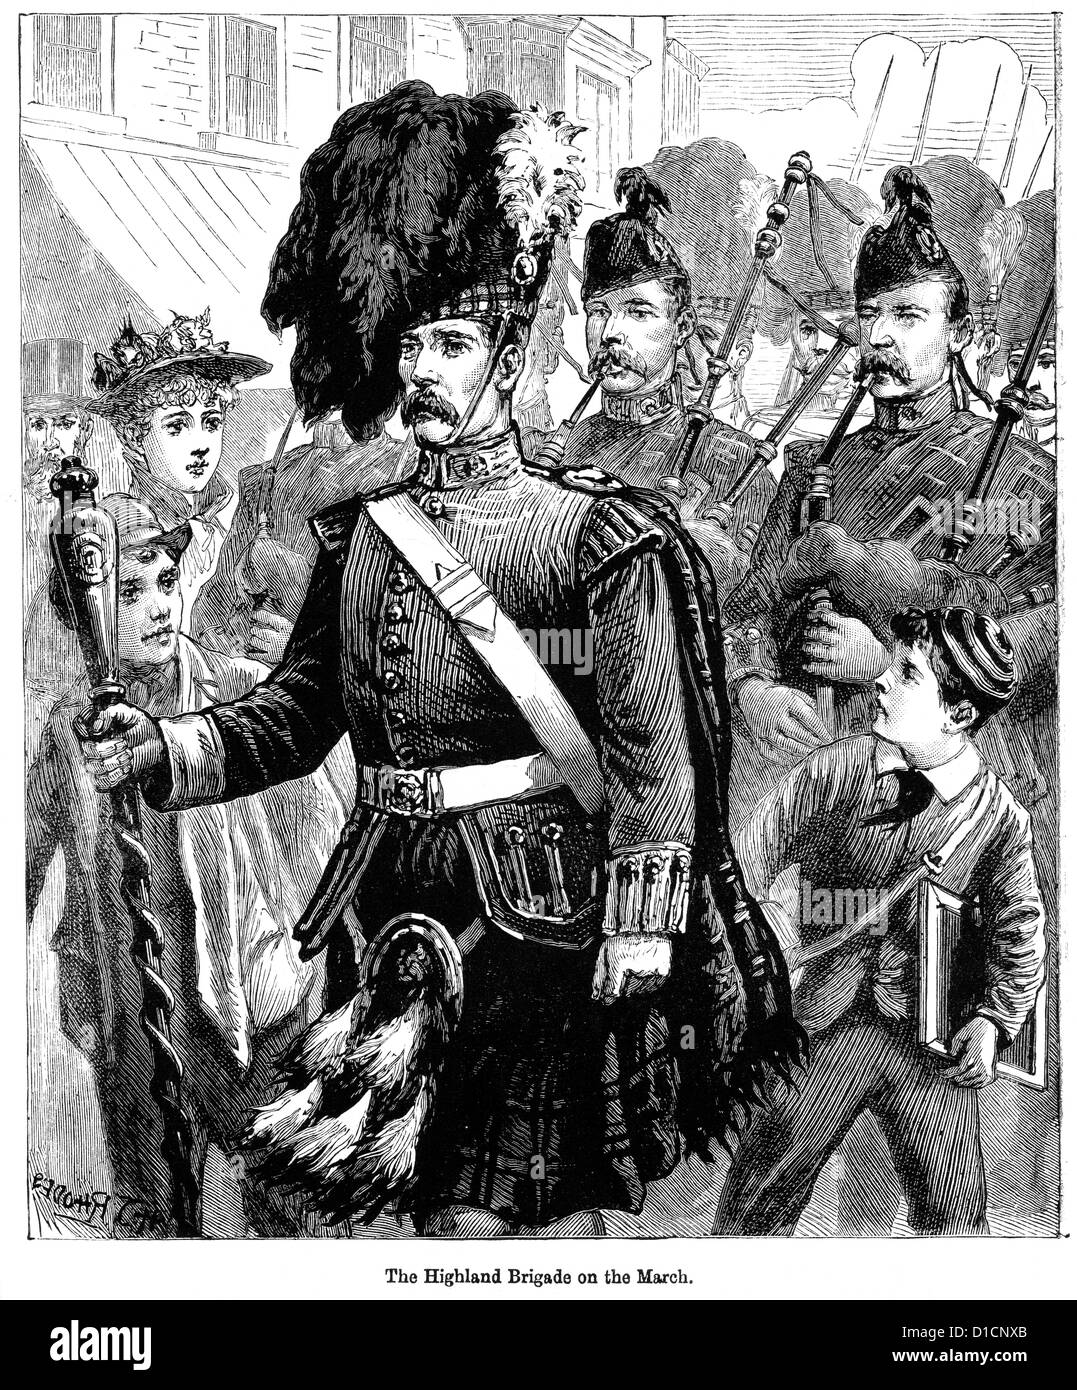 Victorian engraving of the Highland Brigade of the British army on the March, 1897 - Stock Image